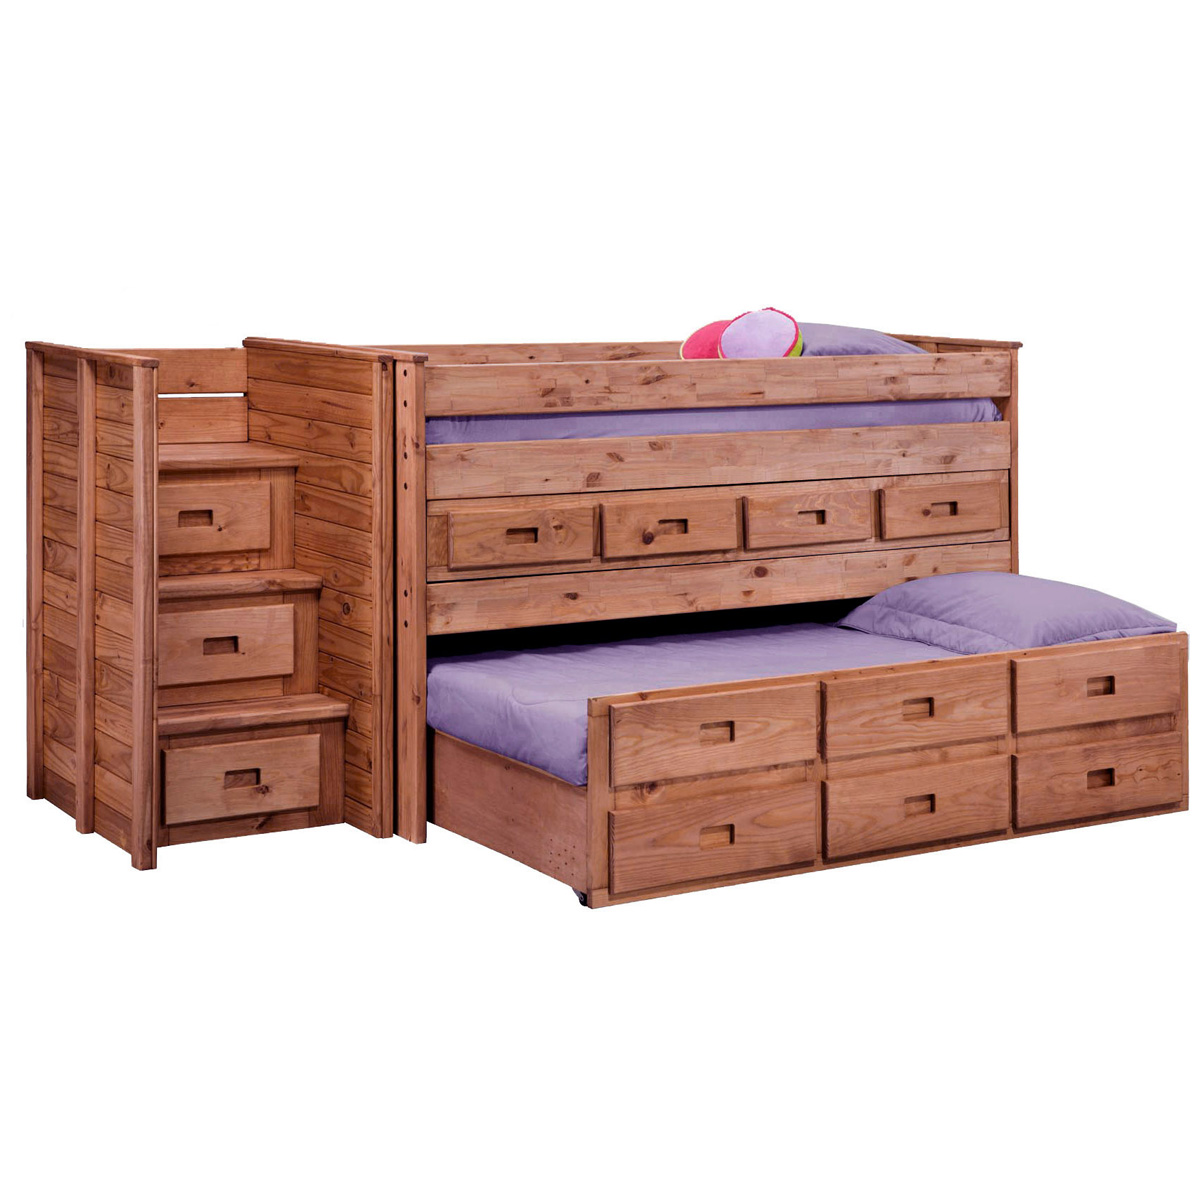 twin loft bed staircase drawers trundle mahogany finish dcg stores. Black Bedroom Furniture Sets. Home Design Ideas